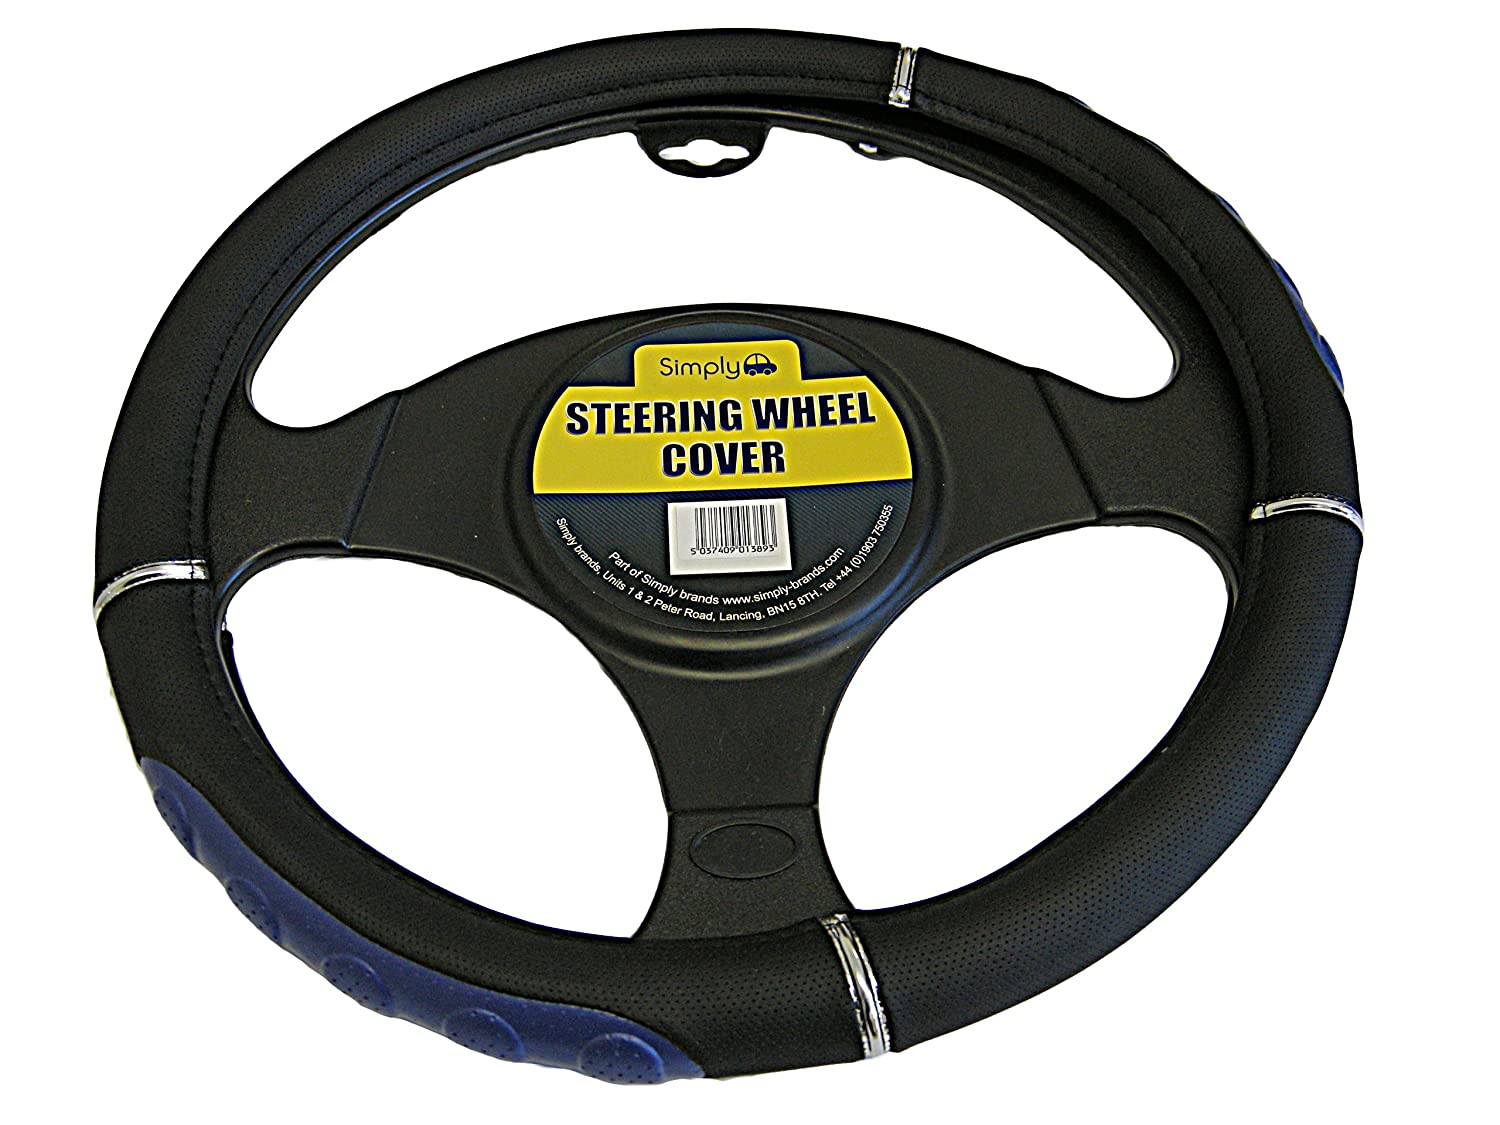 Simply SWC105 Luxury Steering Wheel Cover Black with Blue Detail for Car Interior, Medium Size 37 - 39cm Diameter, Universal Easy to Fit, Comfortable Grip JRP Distribution